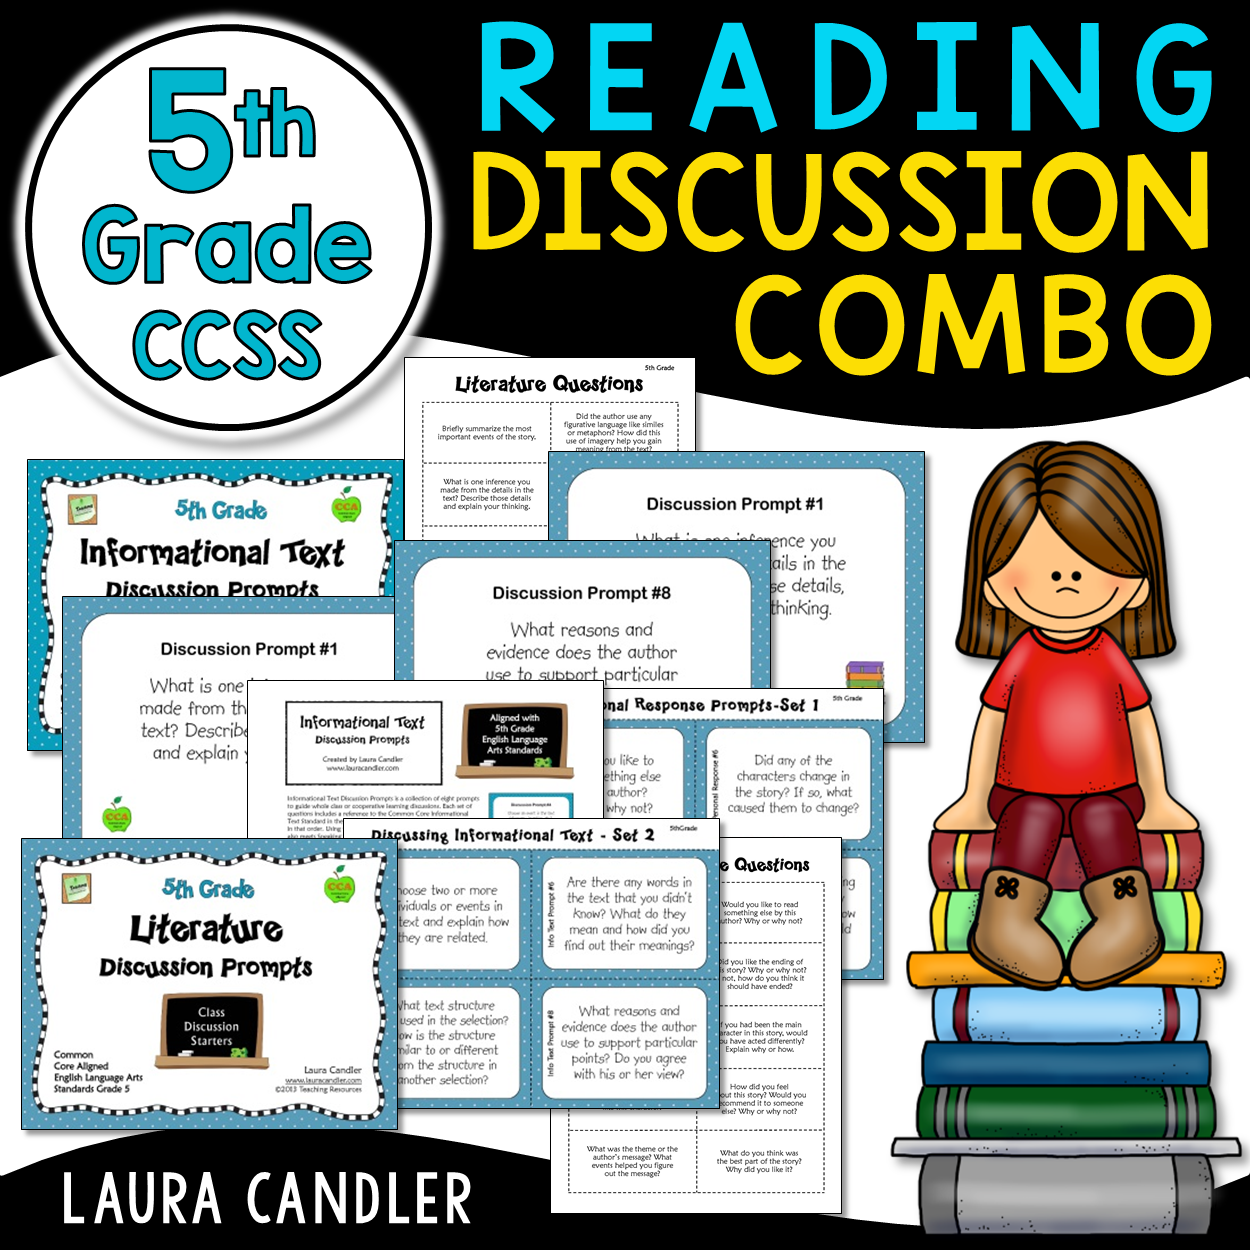 5th Grade Ccss Reading Discussion Bundle Ideal For Esl